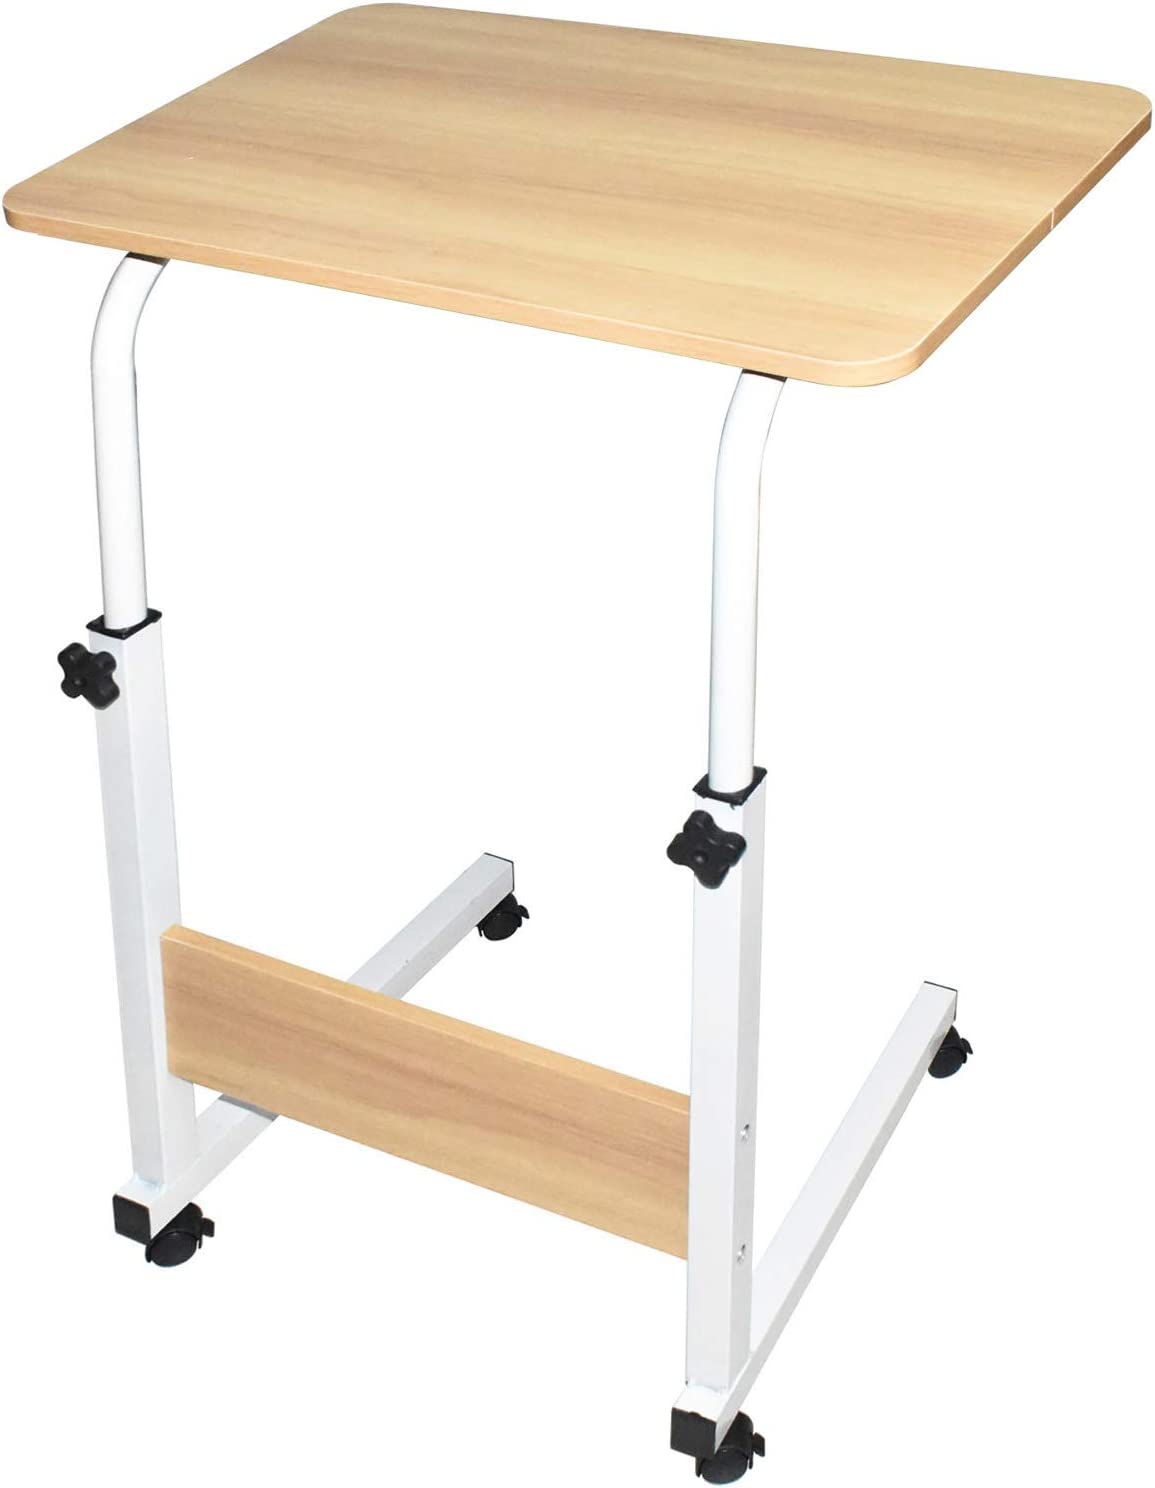 Sofa Side Table with Wheels, Height Adjustable Small Home Office Desk for Small Spaces, Overbed Bedside Table, School Student Study Writing Desk, Laptop Desk TV Table for Living Room Bedrooms (Oak)